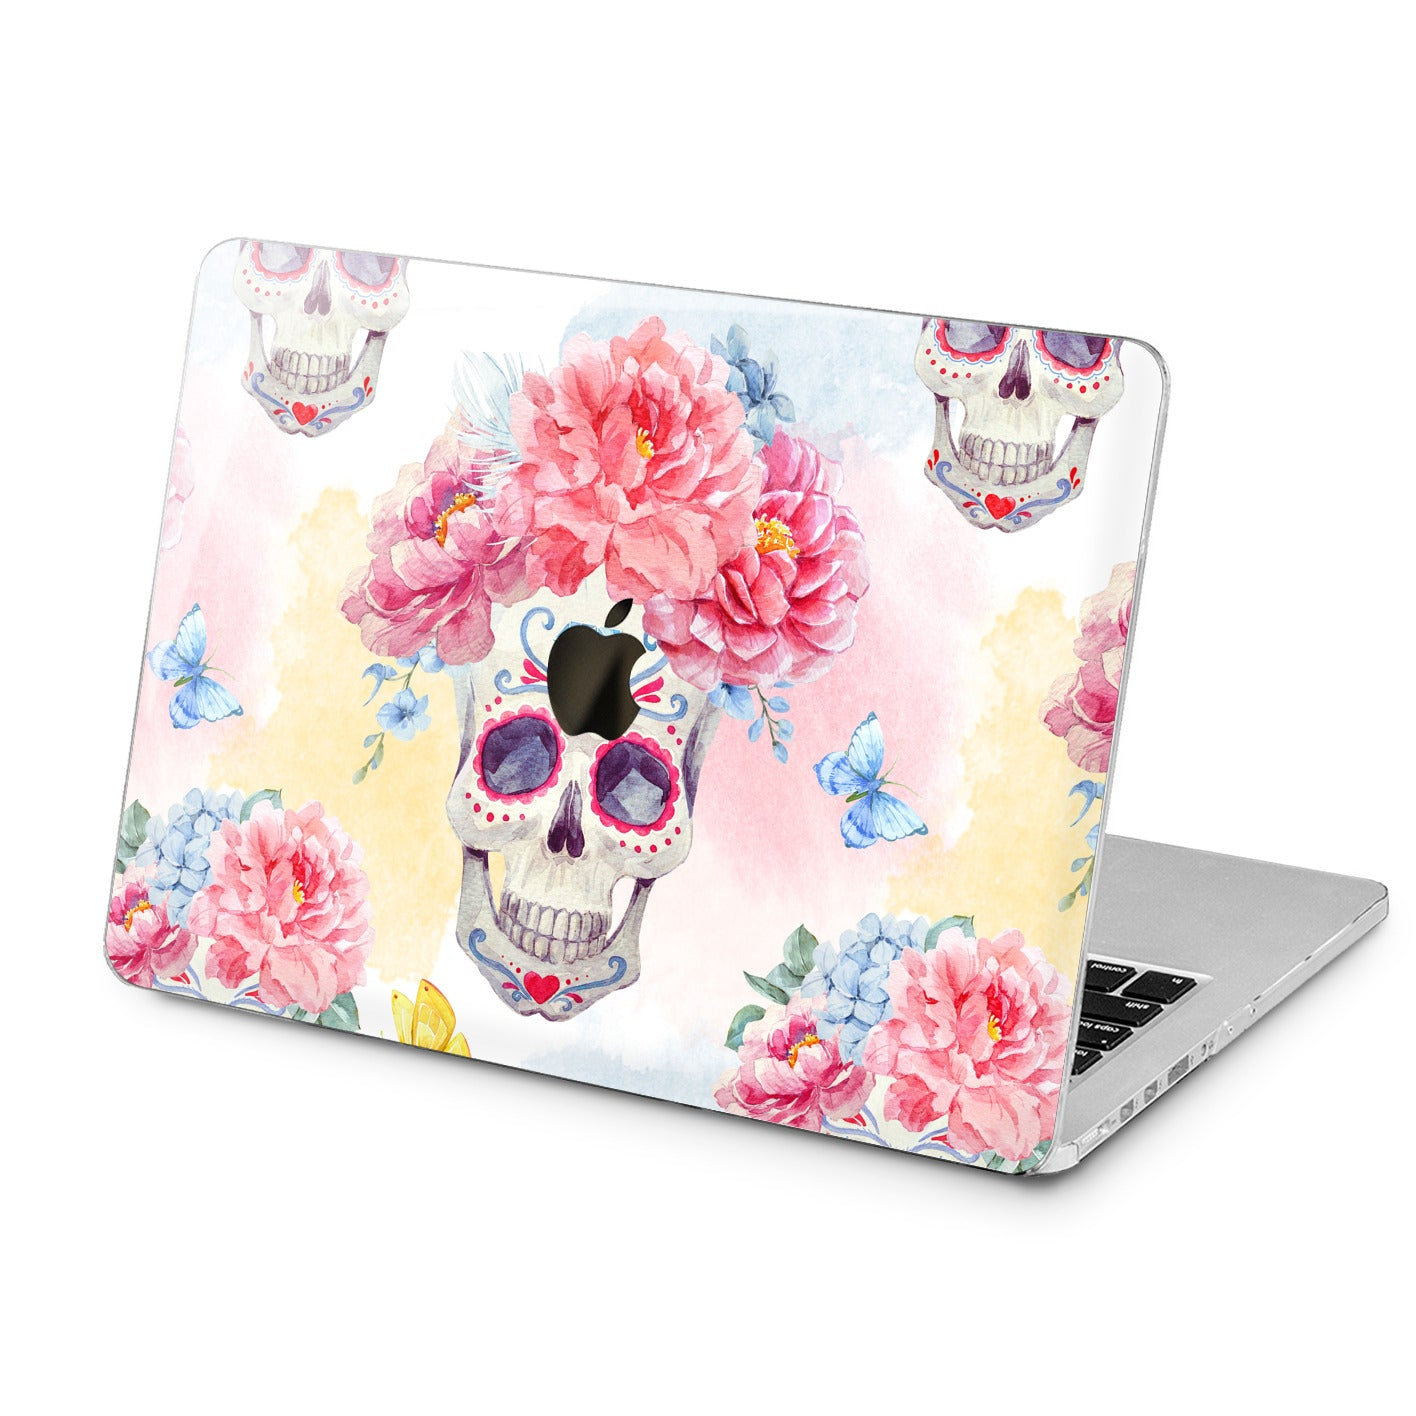 Lex Altern Lex Altern Bohemian Blossom Case for your Laptop Apple Macbook.